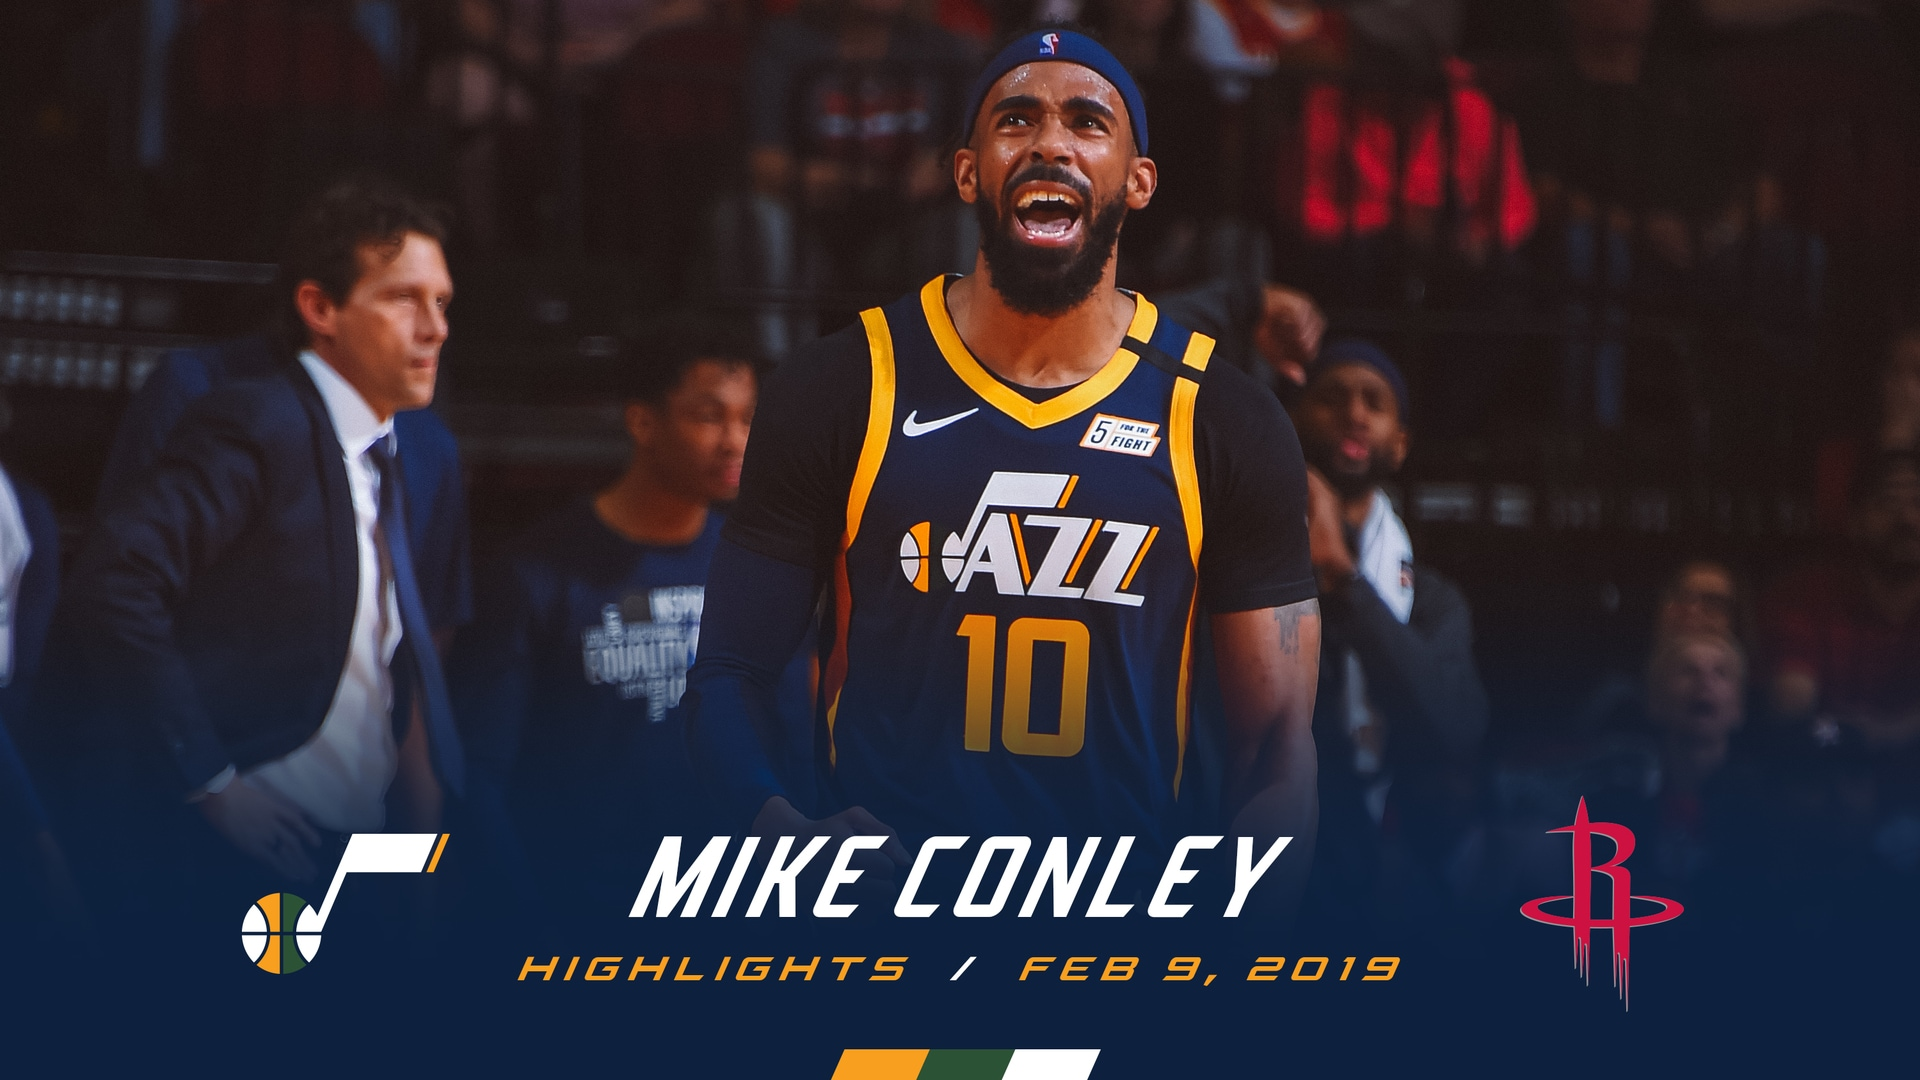 Highlights: Mike Conley—20 points, 6 assists